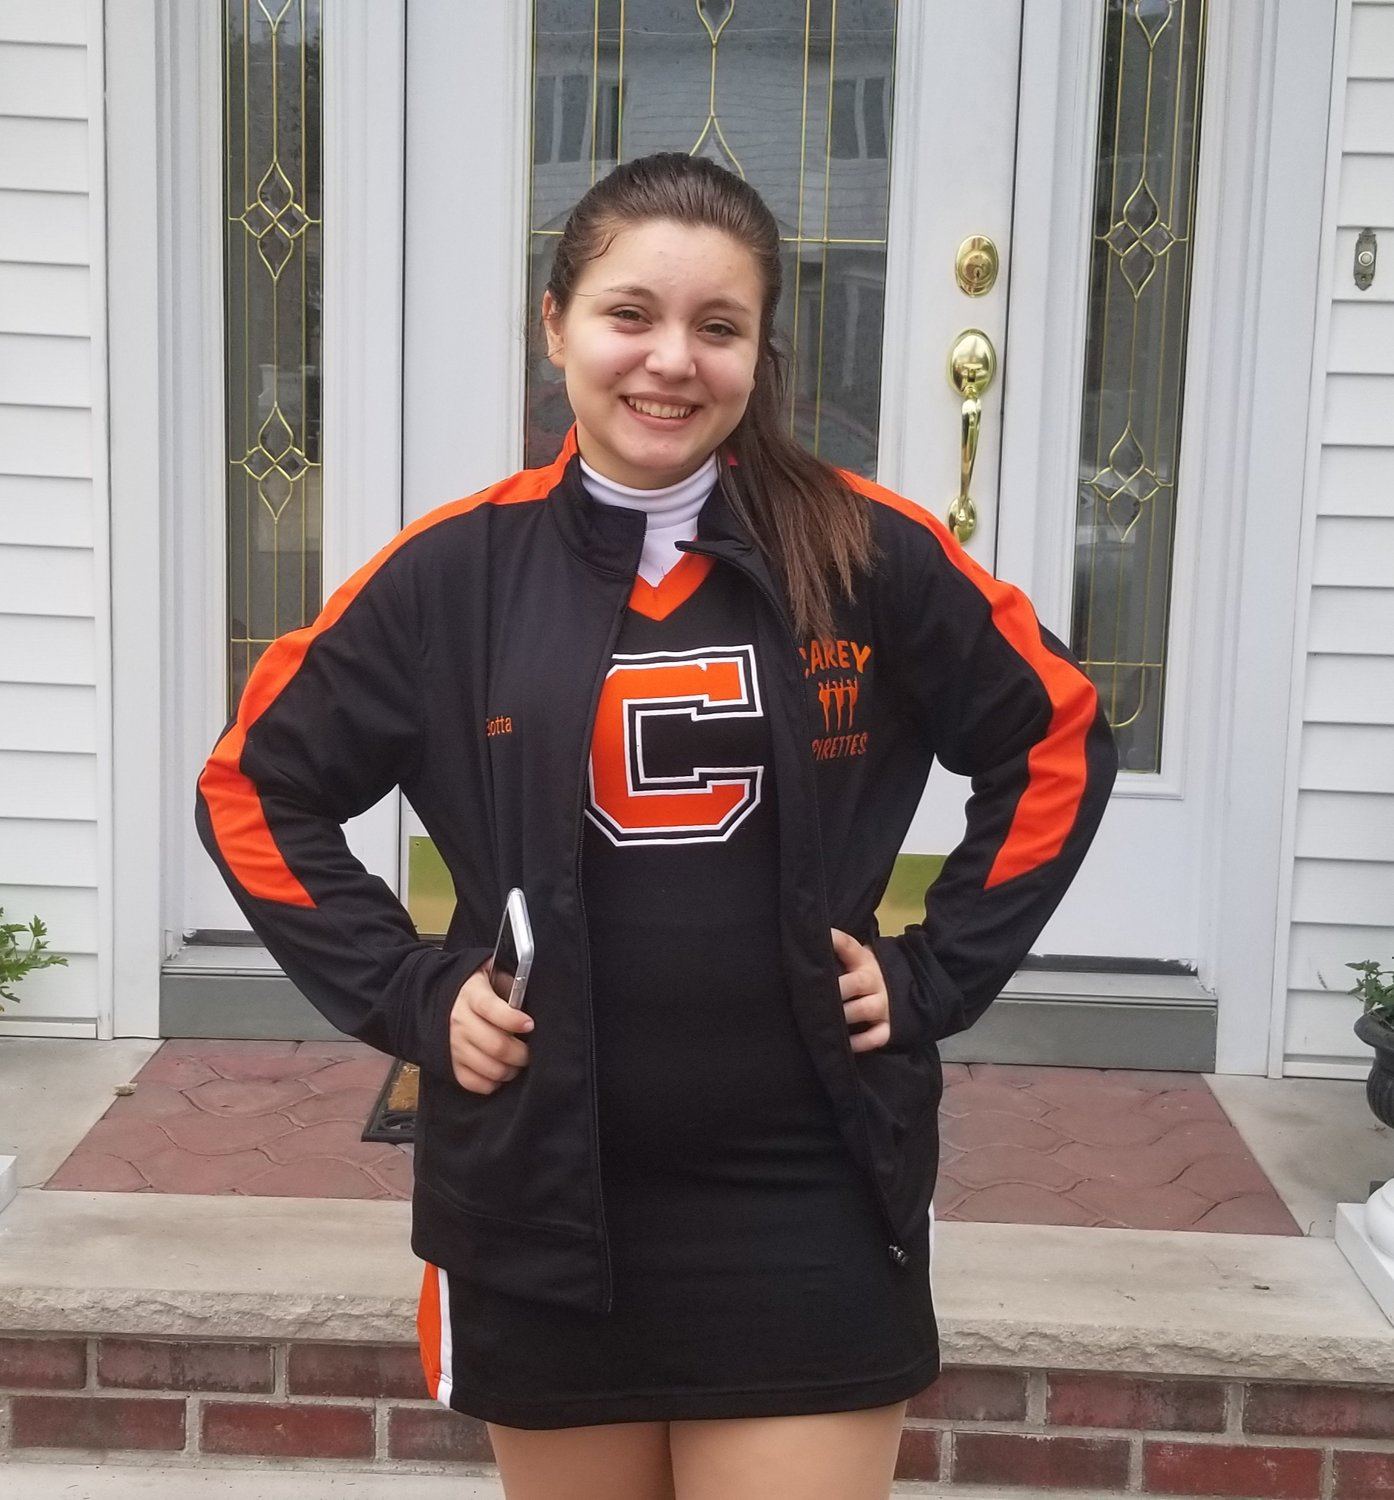 Franklin Square's Jacqueline Botta was diagnosed with nephrotic syndrome on Feb. 28, 2016. Despite her illness, she still particiapates in school activities, including the H. Frank Carey Pirettes kickline team.